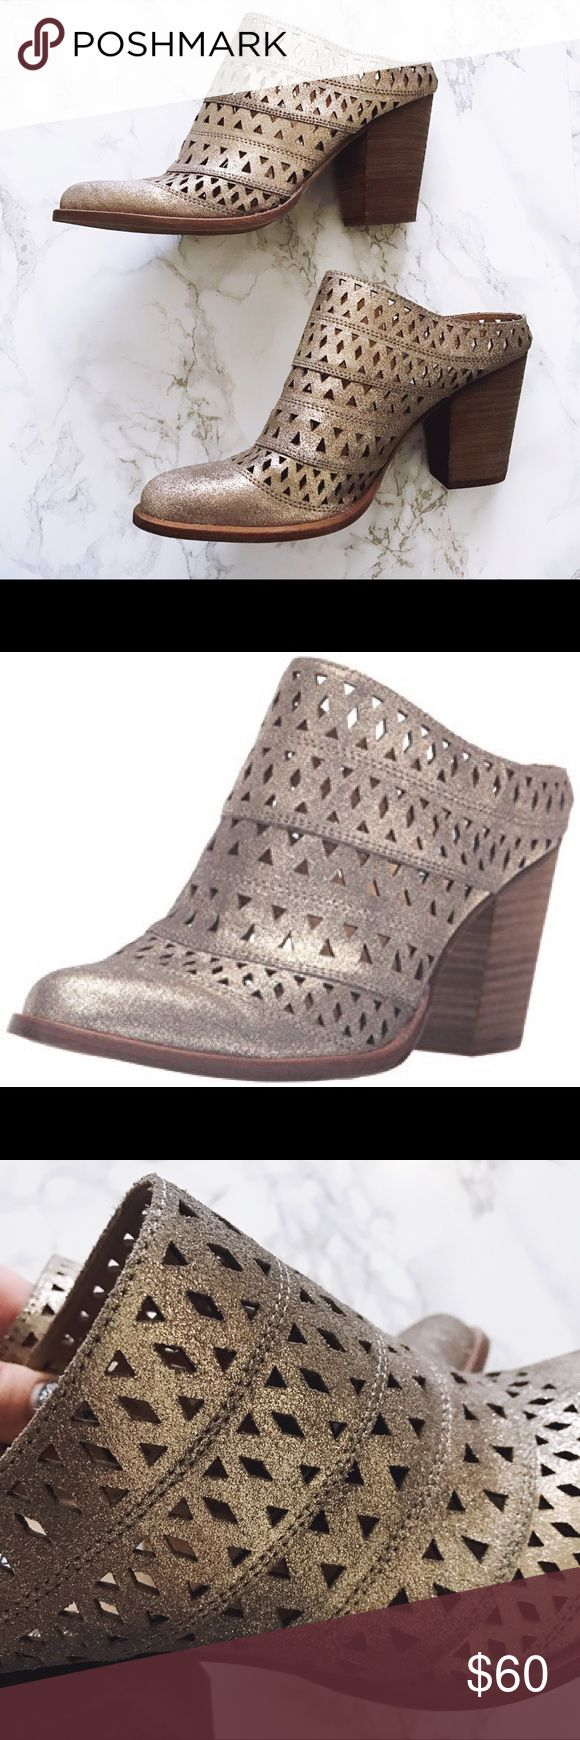 """Glitter Laser Cut Heeled Mules ✨ Gorgeous sparkly mules from Steve Madden with laser cut leather and a stacked heel. Super trendy and unbelievably comfortable! Fits a true size 9. Worn maybe 2 times and no signs of wear on the outside. Color is called """"dusty gold"""" and is super unique and matches everything. Hard to capture in lighting but the stock photo is pretty accurate! Make me an offer! Steve Madden Shoes Mules & Clogs"""